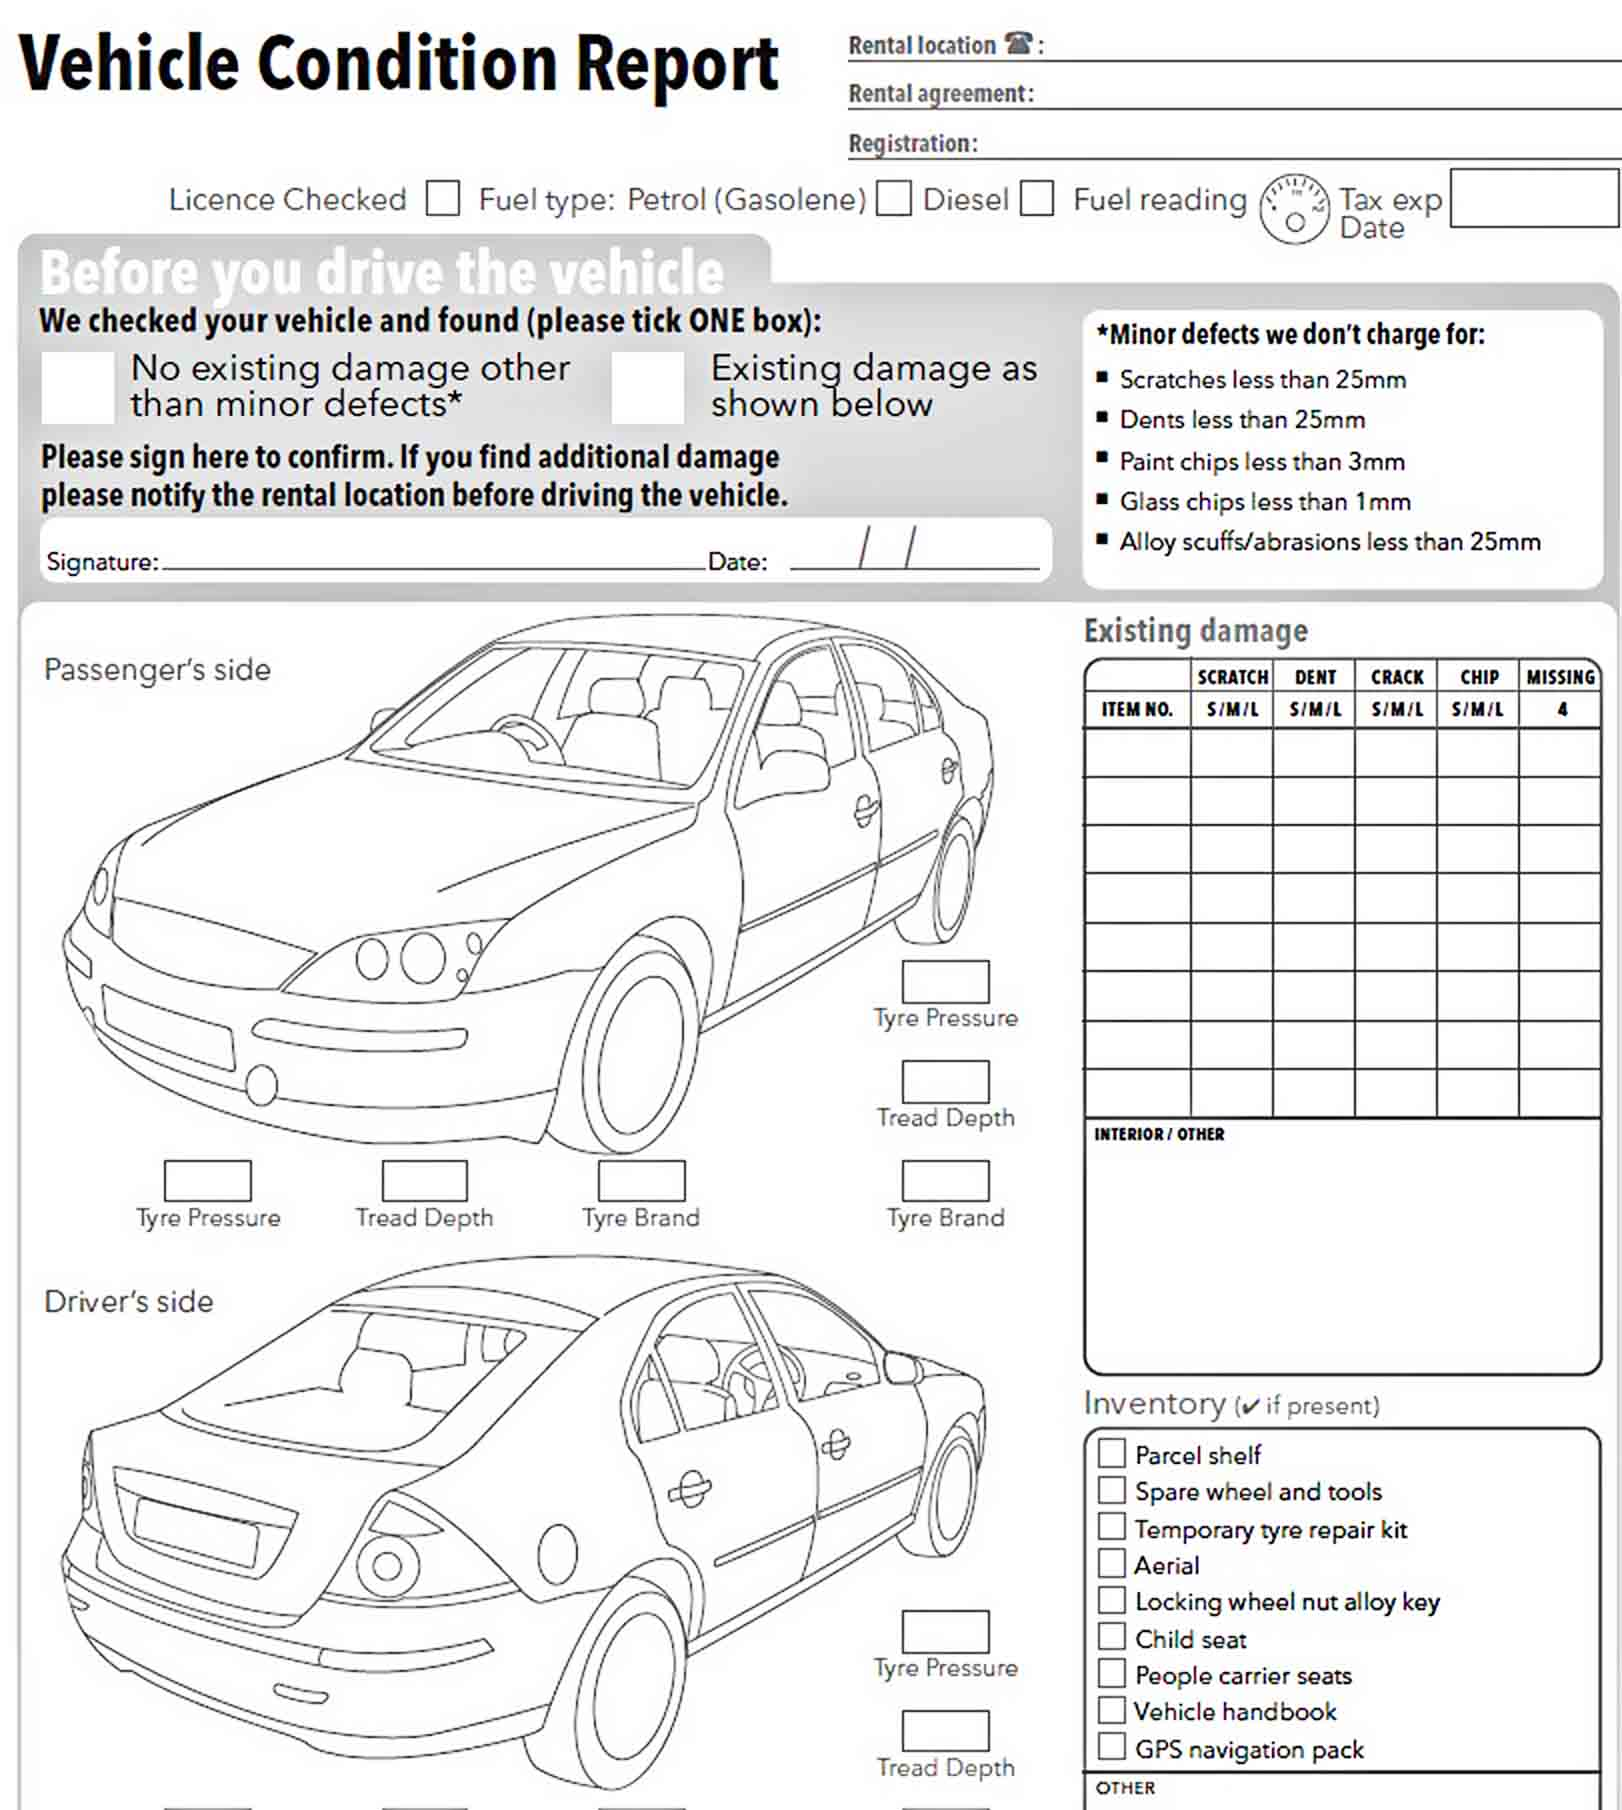 Templates Vehicle Condition Report